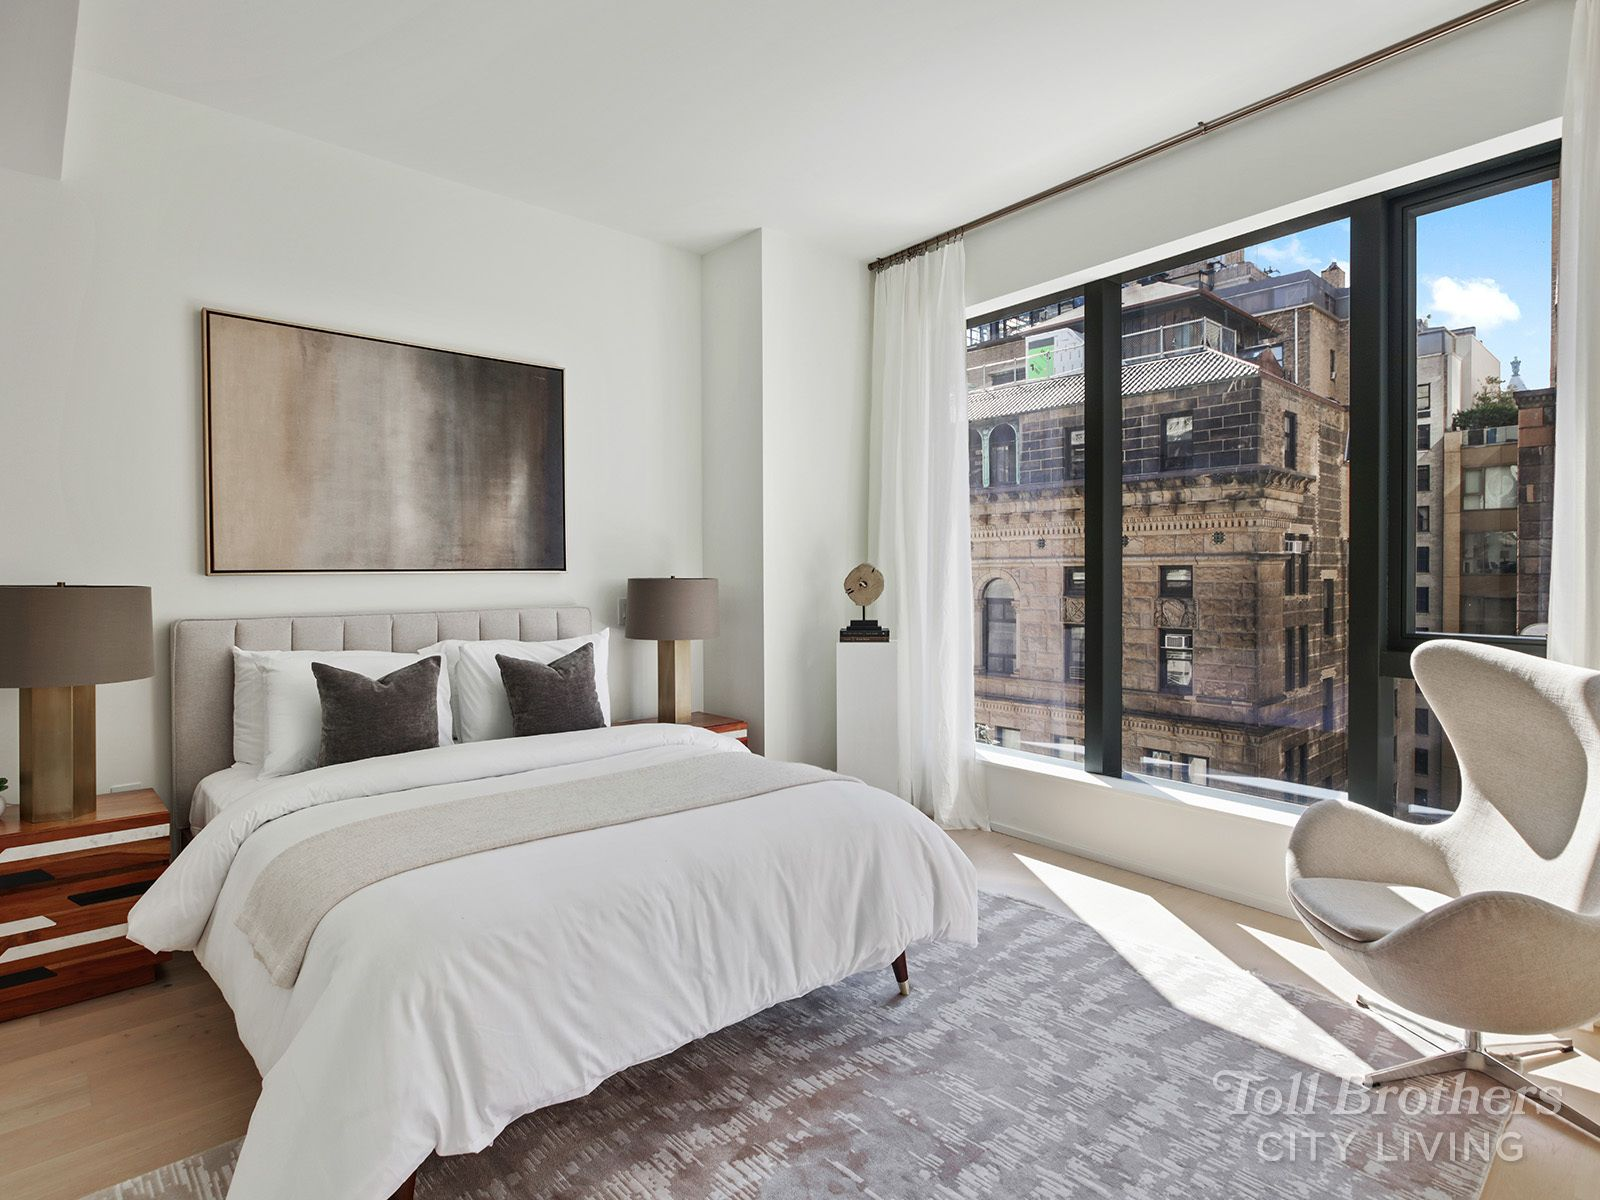 Bedroom featured in the S902 By Toll Brothers in New York, NY